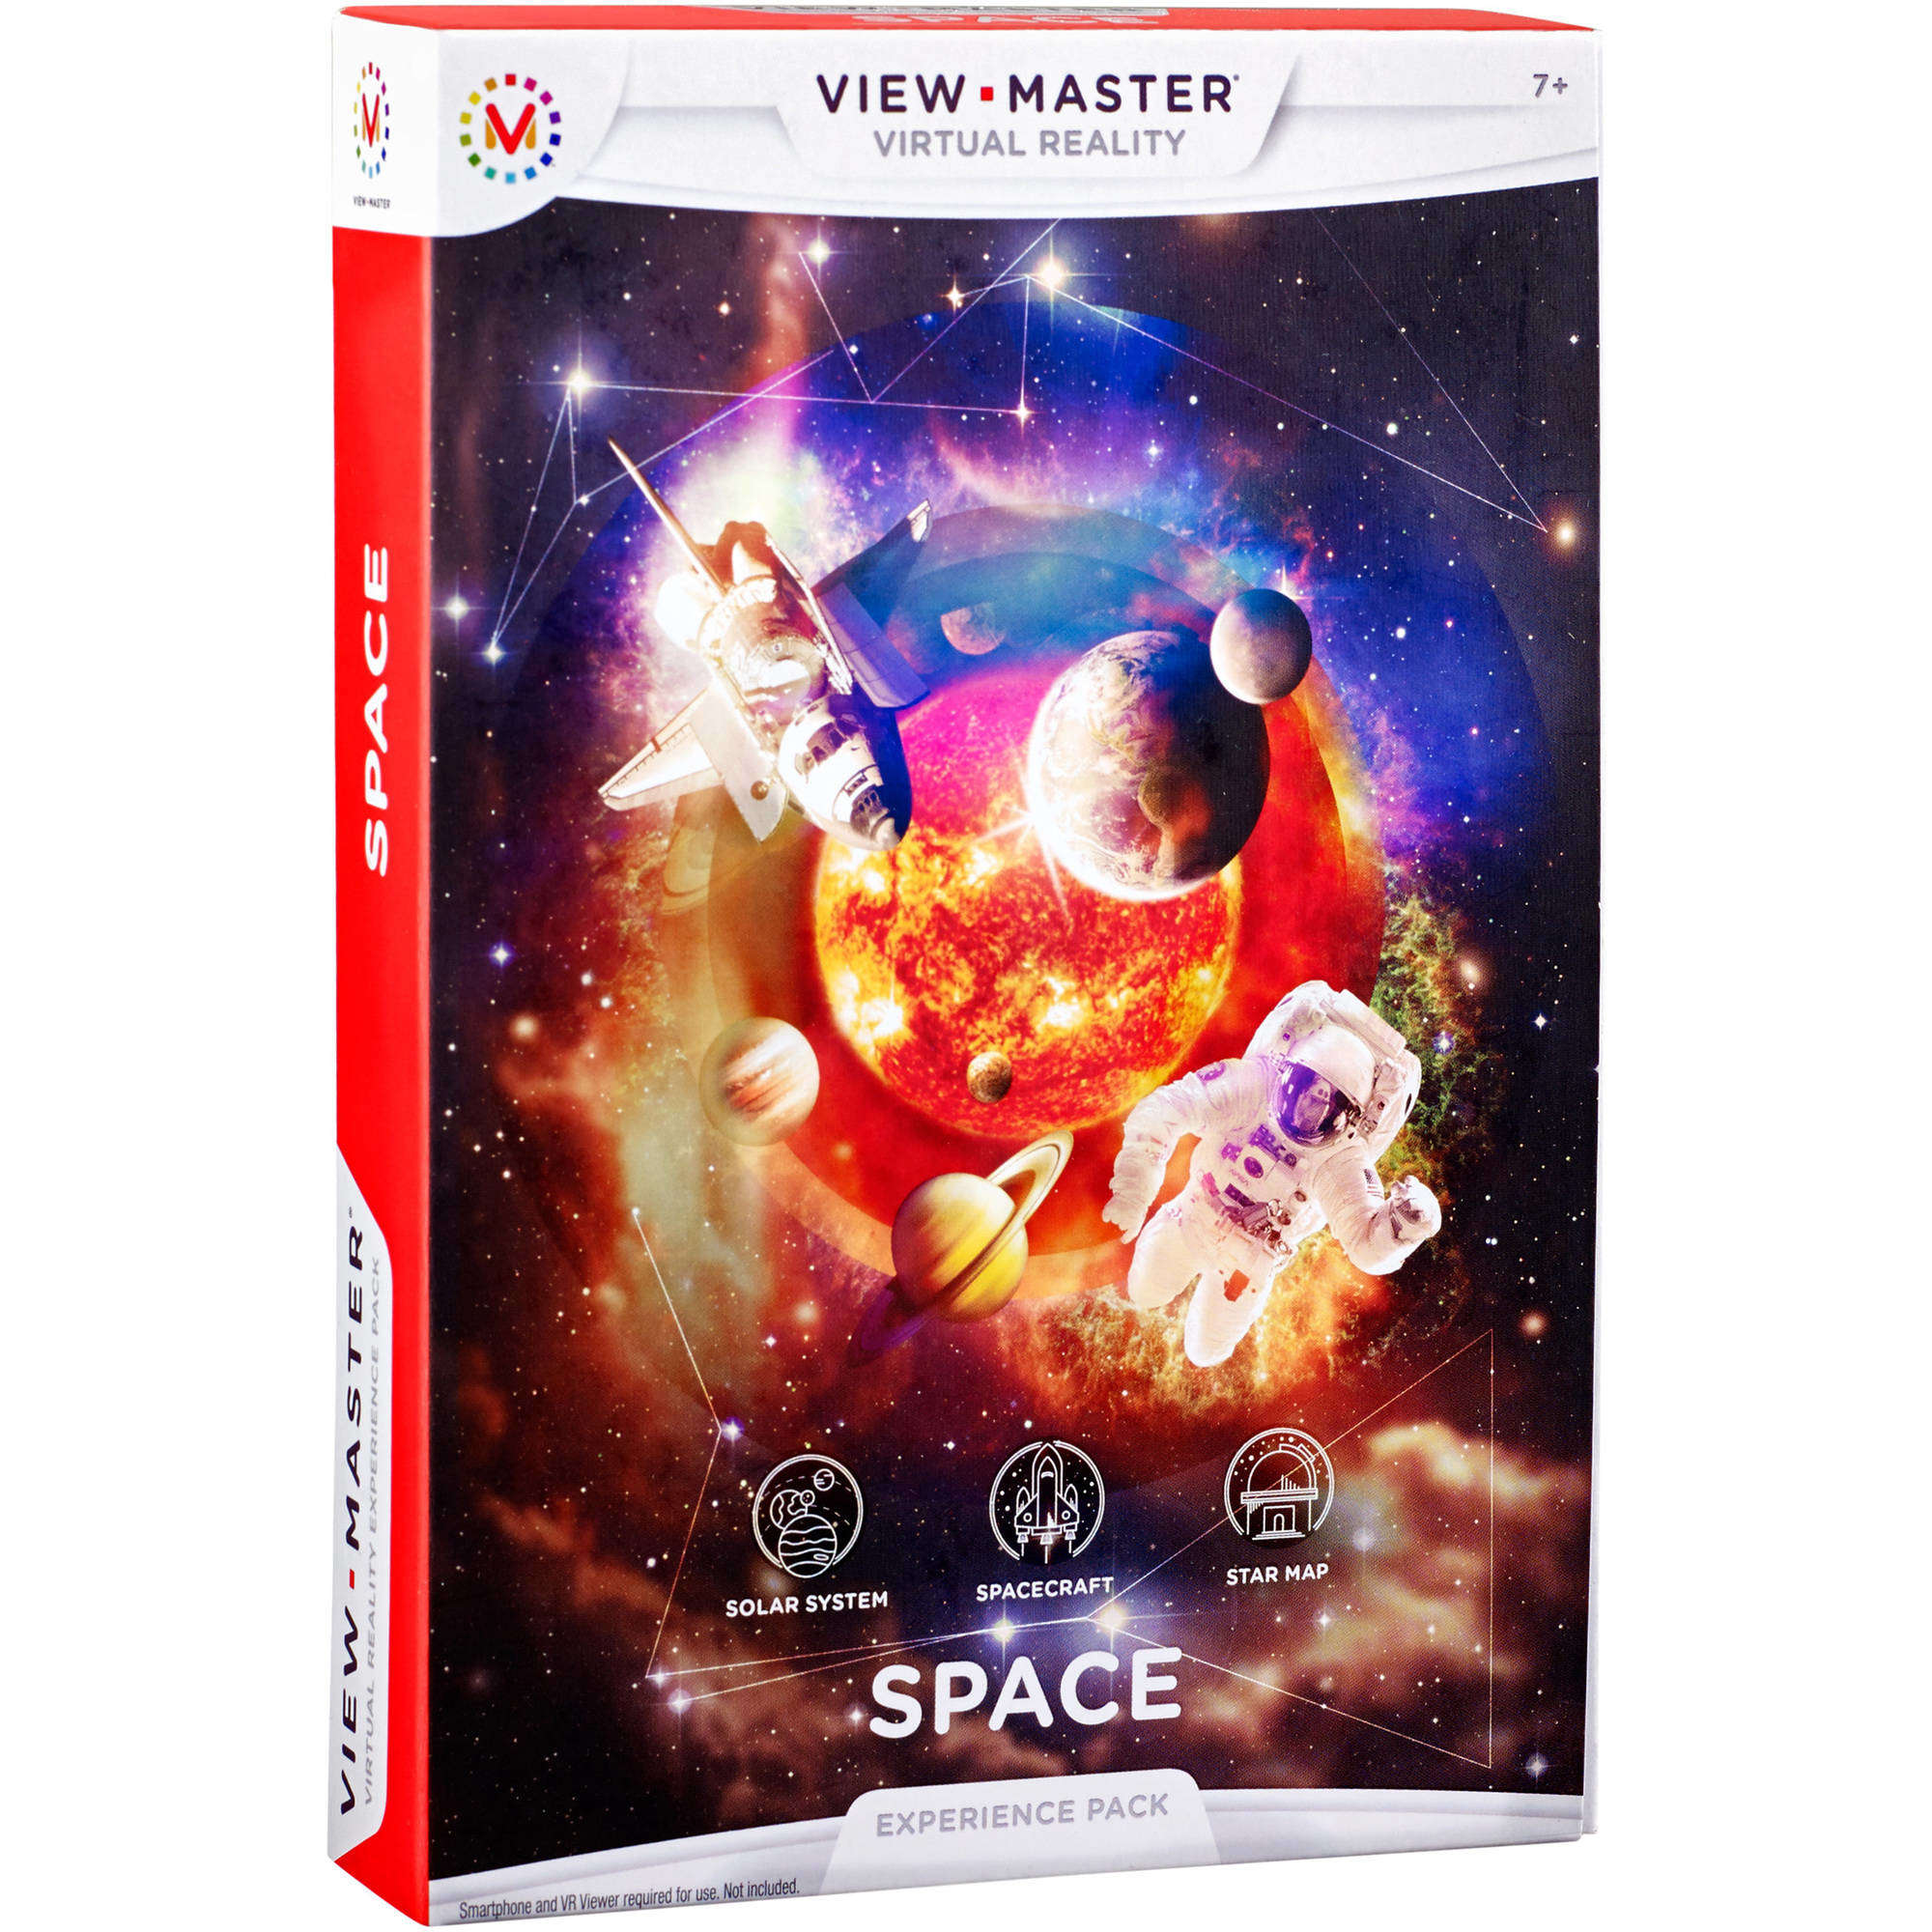 View-Master Experience Pack, Space Explorations by View-Master